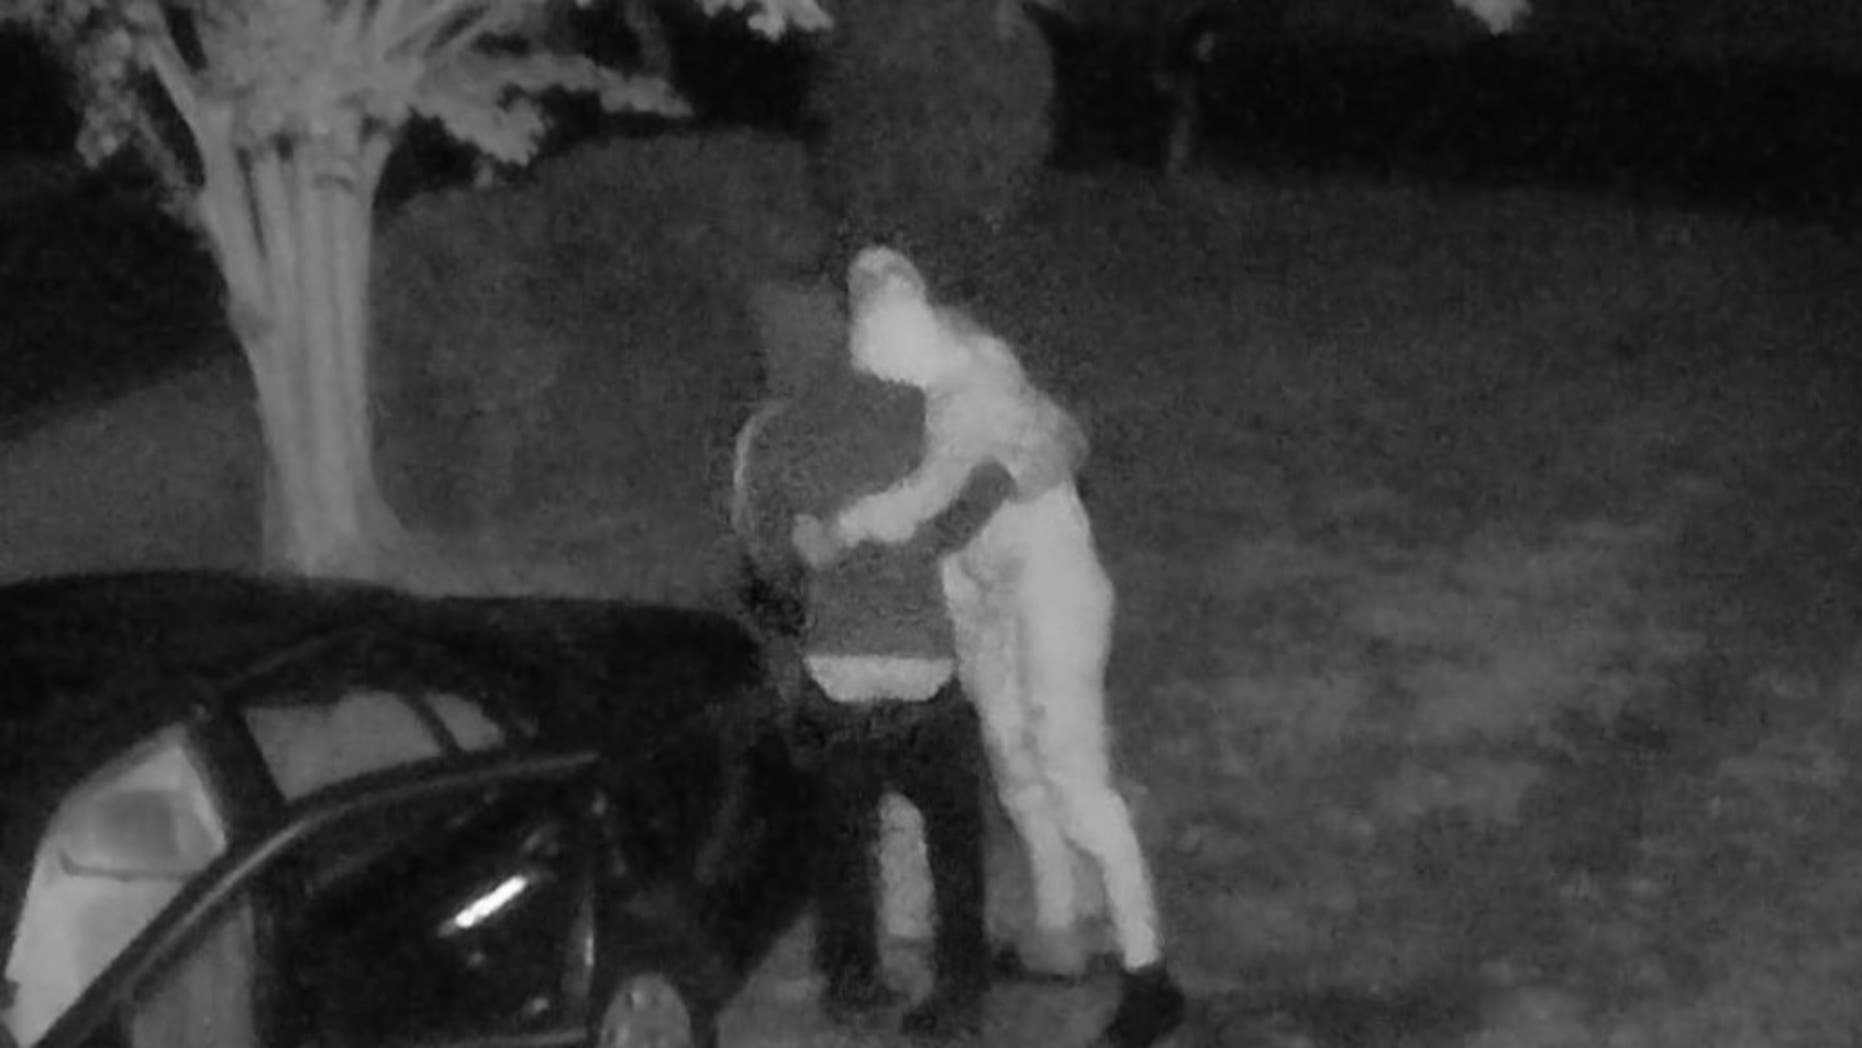 Three men in Virginia were caught hugging and jumping for joy after reportedly stealing hundreds of dollars from an unlocked car early Tuesday morning.